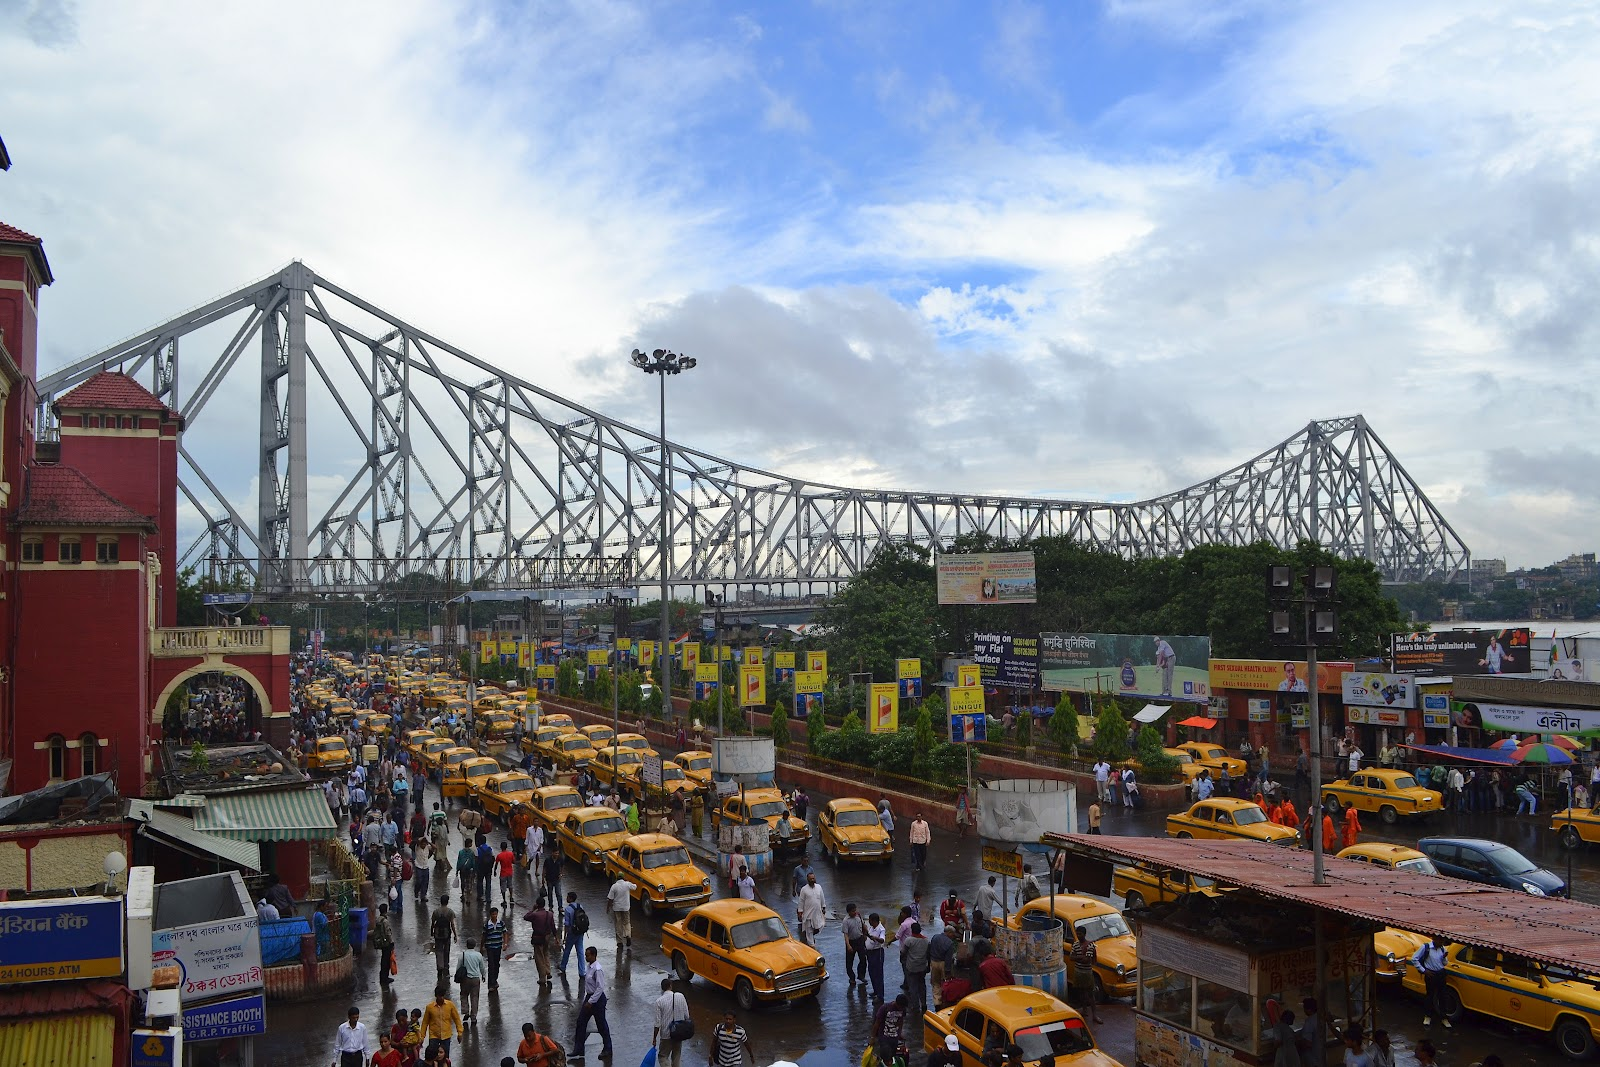 CHAUTARE, the storytellers from East Himalaya: Kolkata Taxis